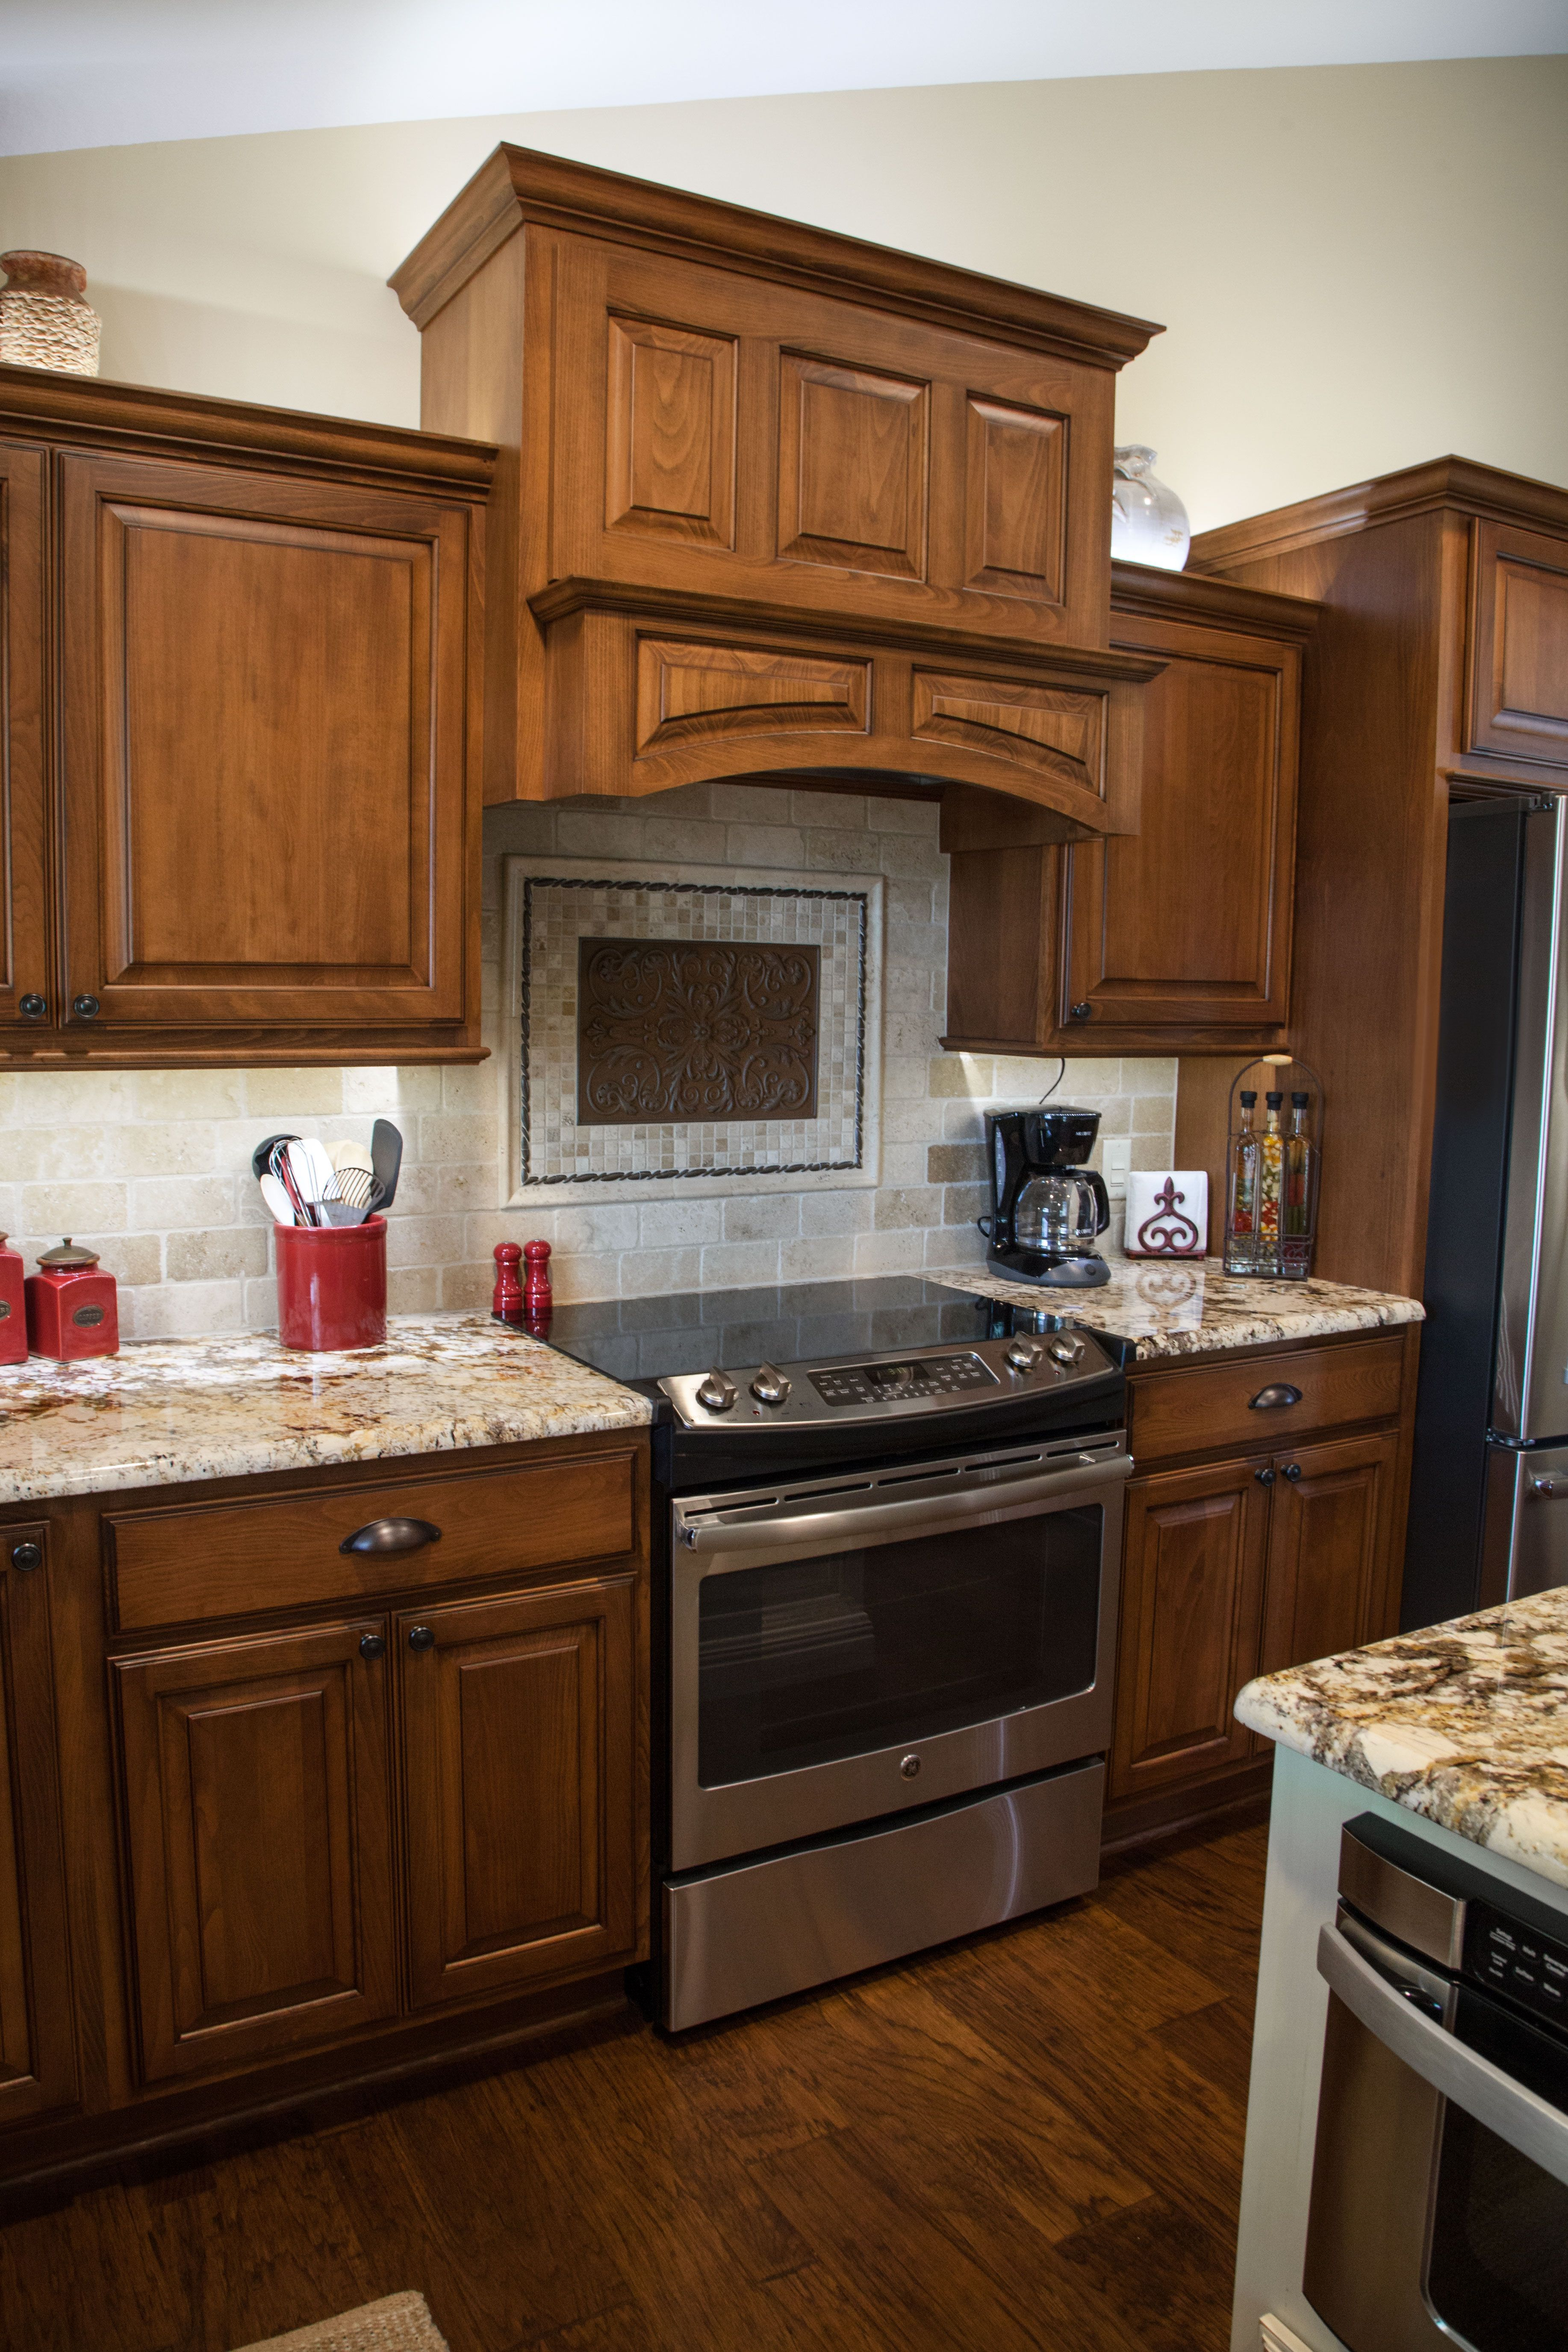 beech/sienna-burg glaze kitchen. geriba gold exotic granite